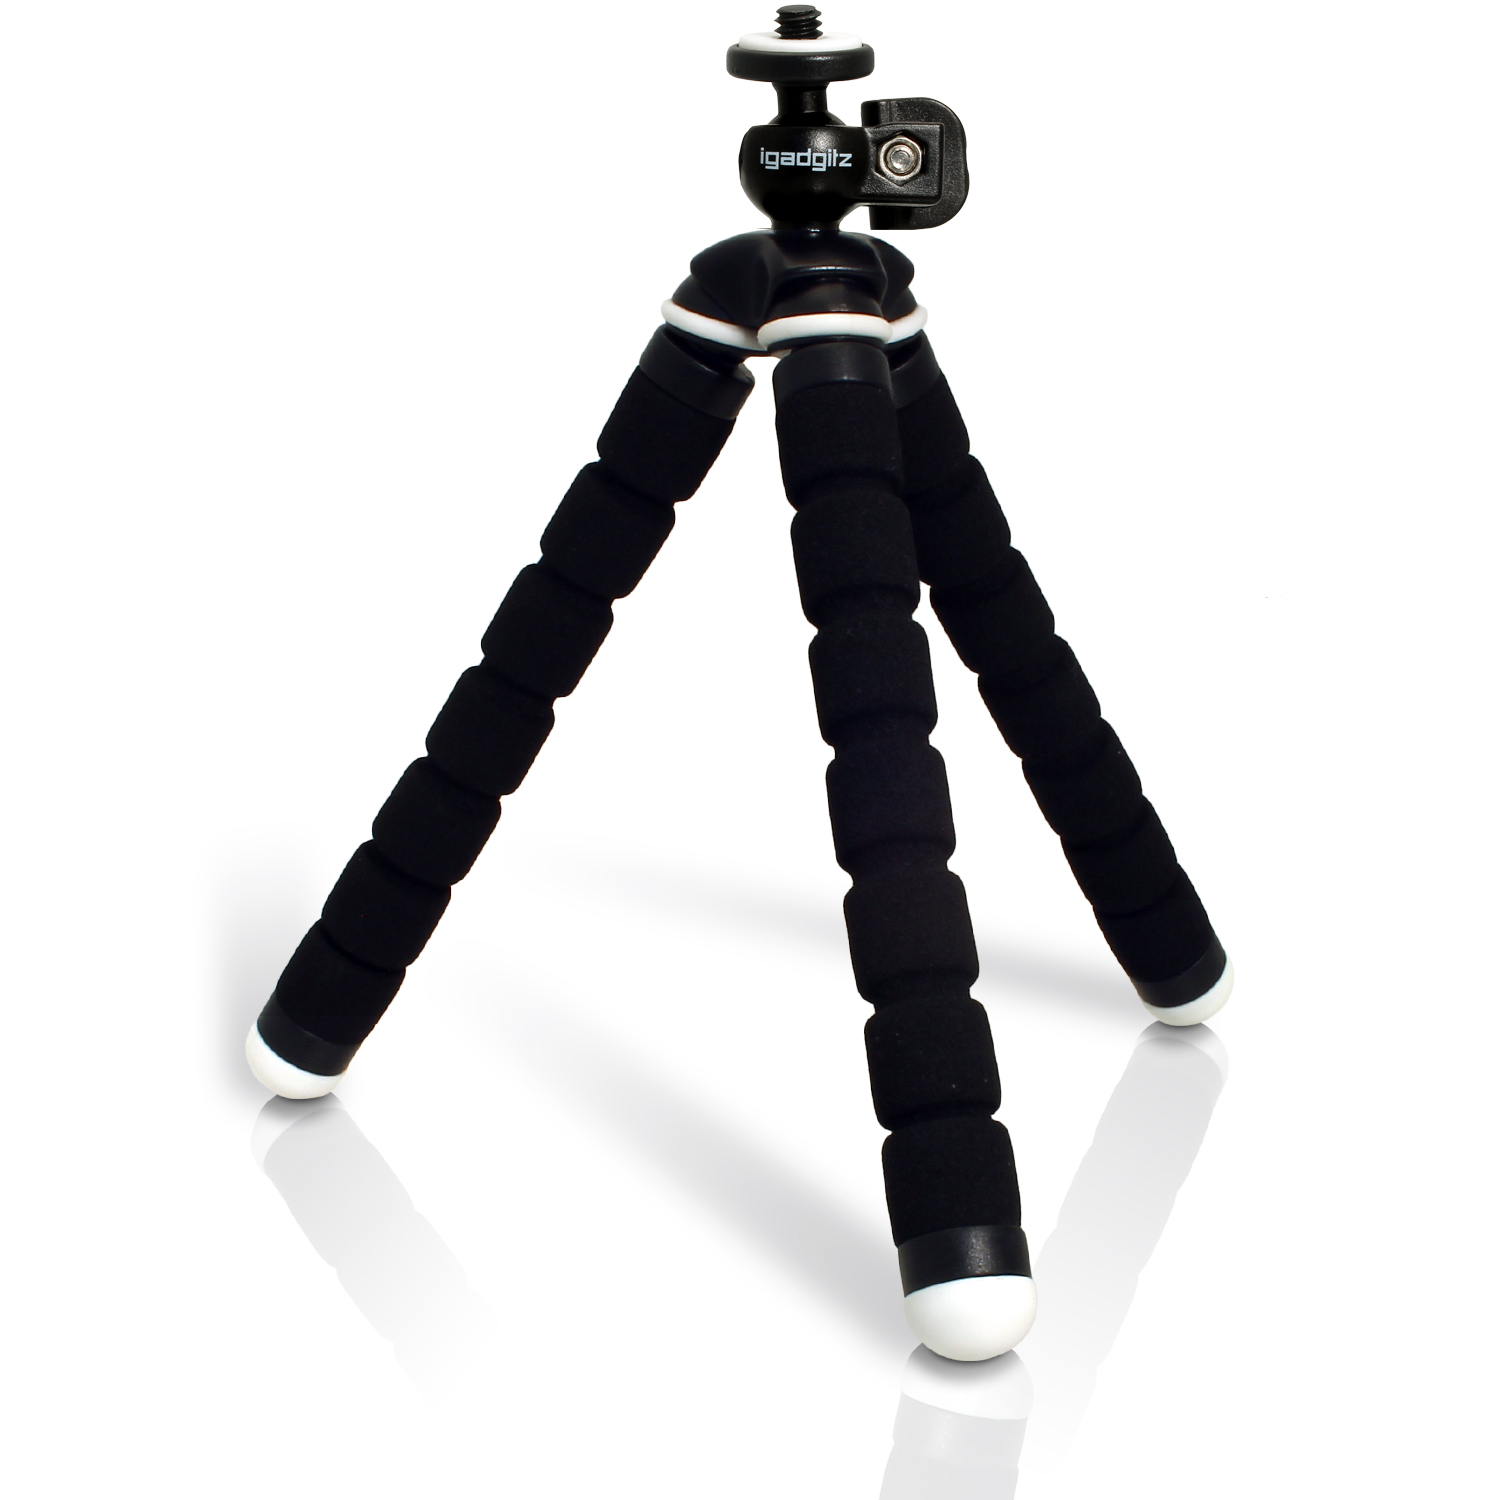 iGadgitz Lightweight Small Universal Flexible Foam Mini Tripod for Compact Cameras ? Black